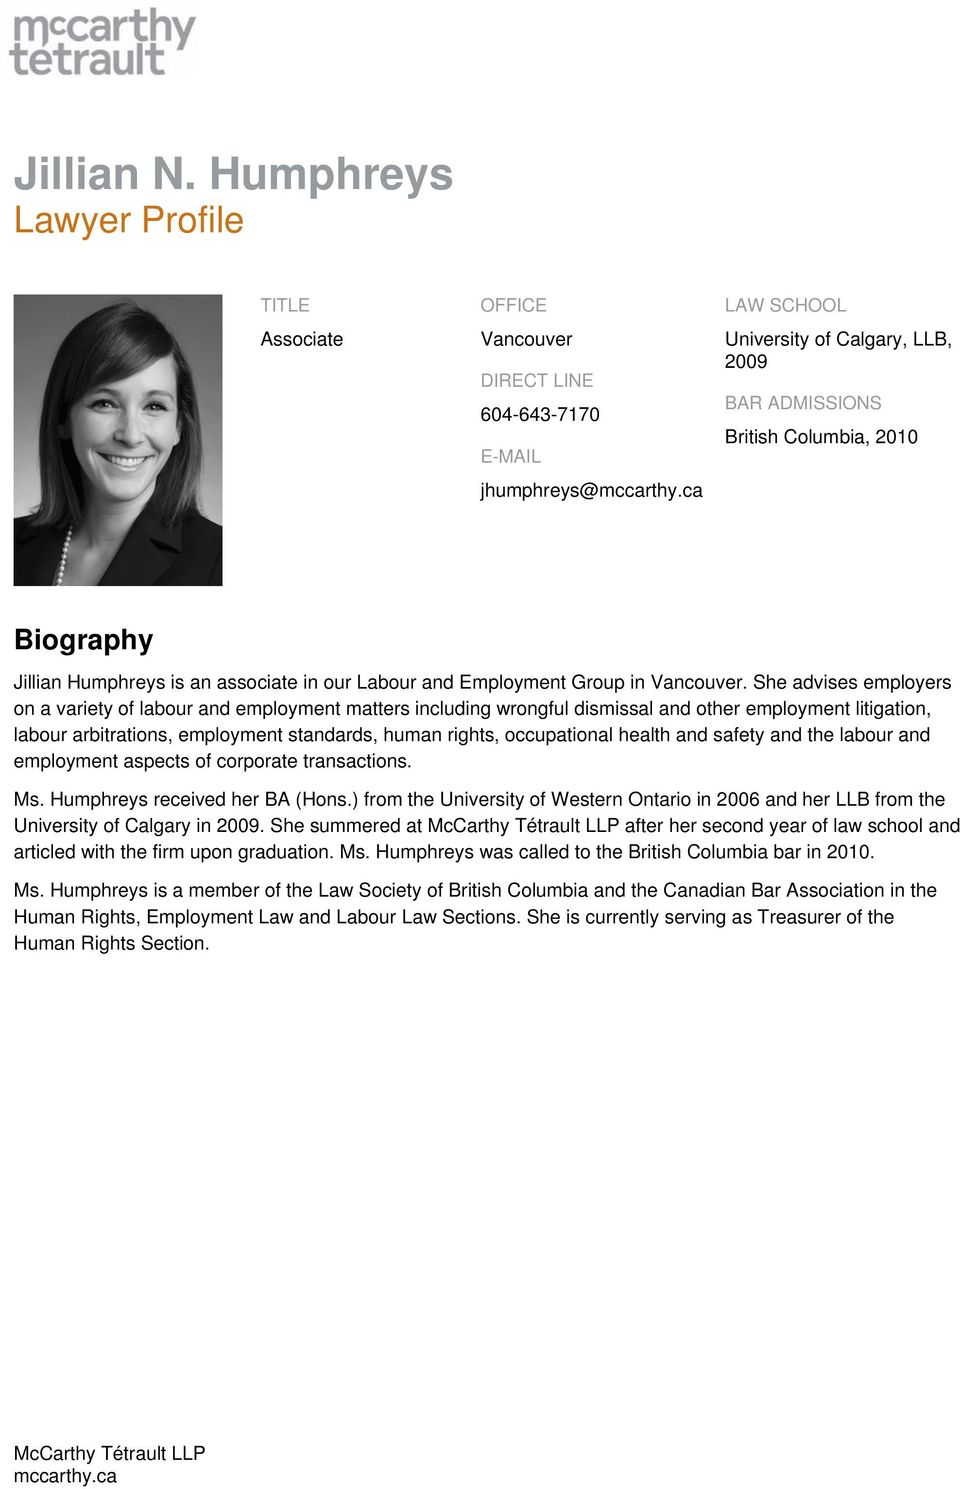 Jillian Humphreys is an associate in our Labour and Employment Group in Vancouver.